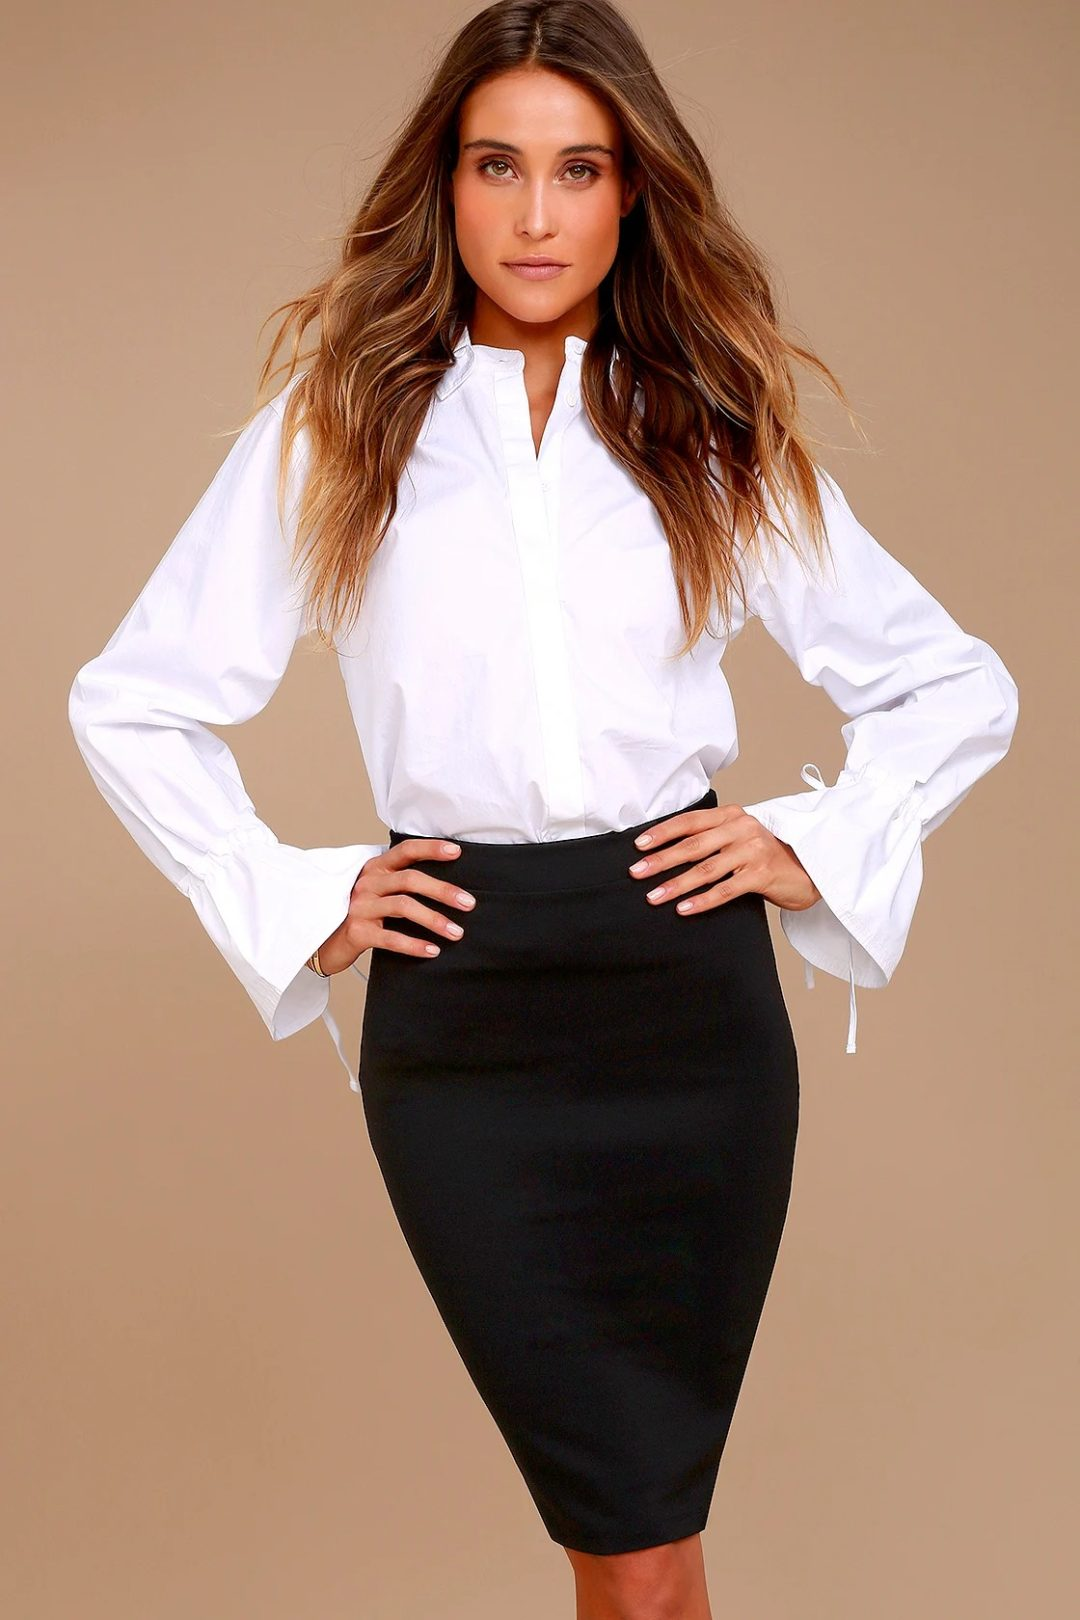 White long-sleeved top with black pencil skirt